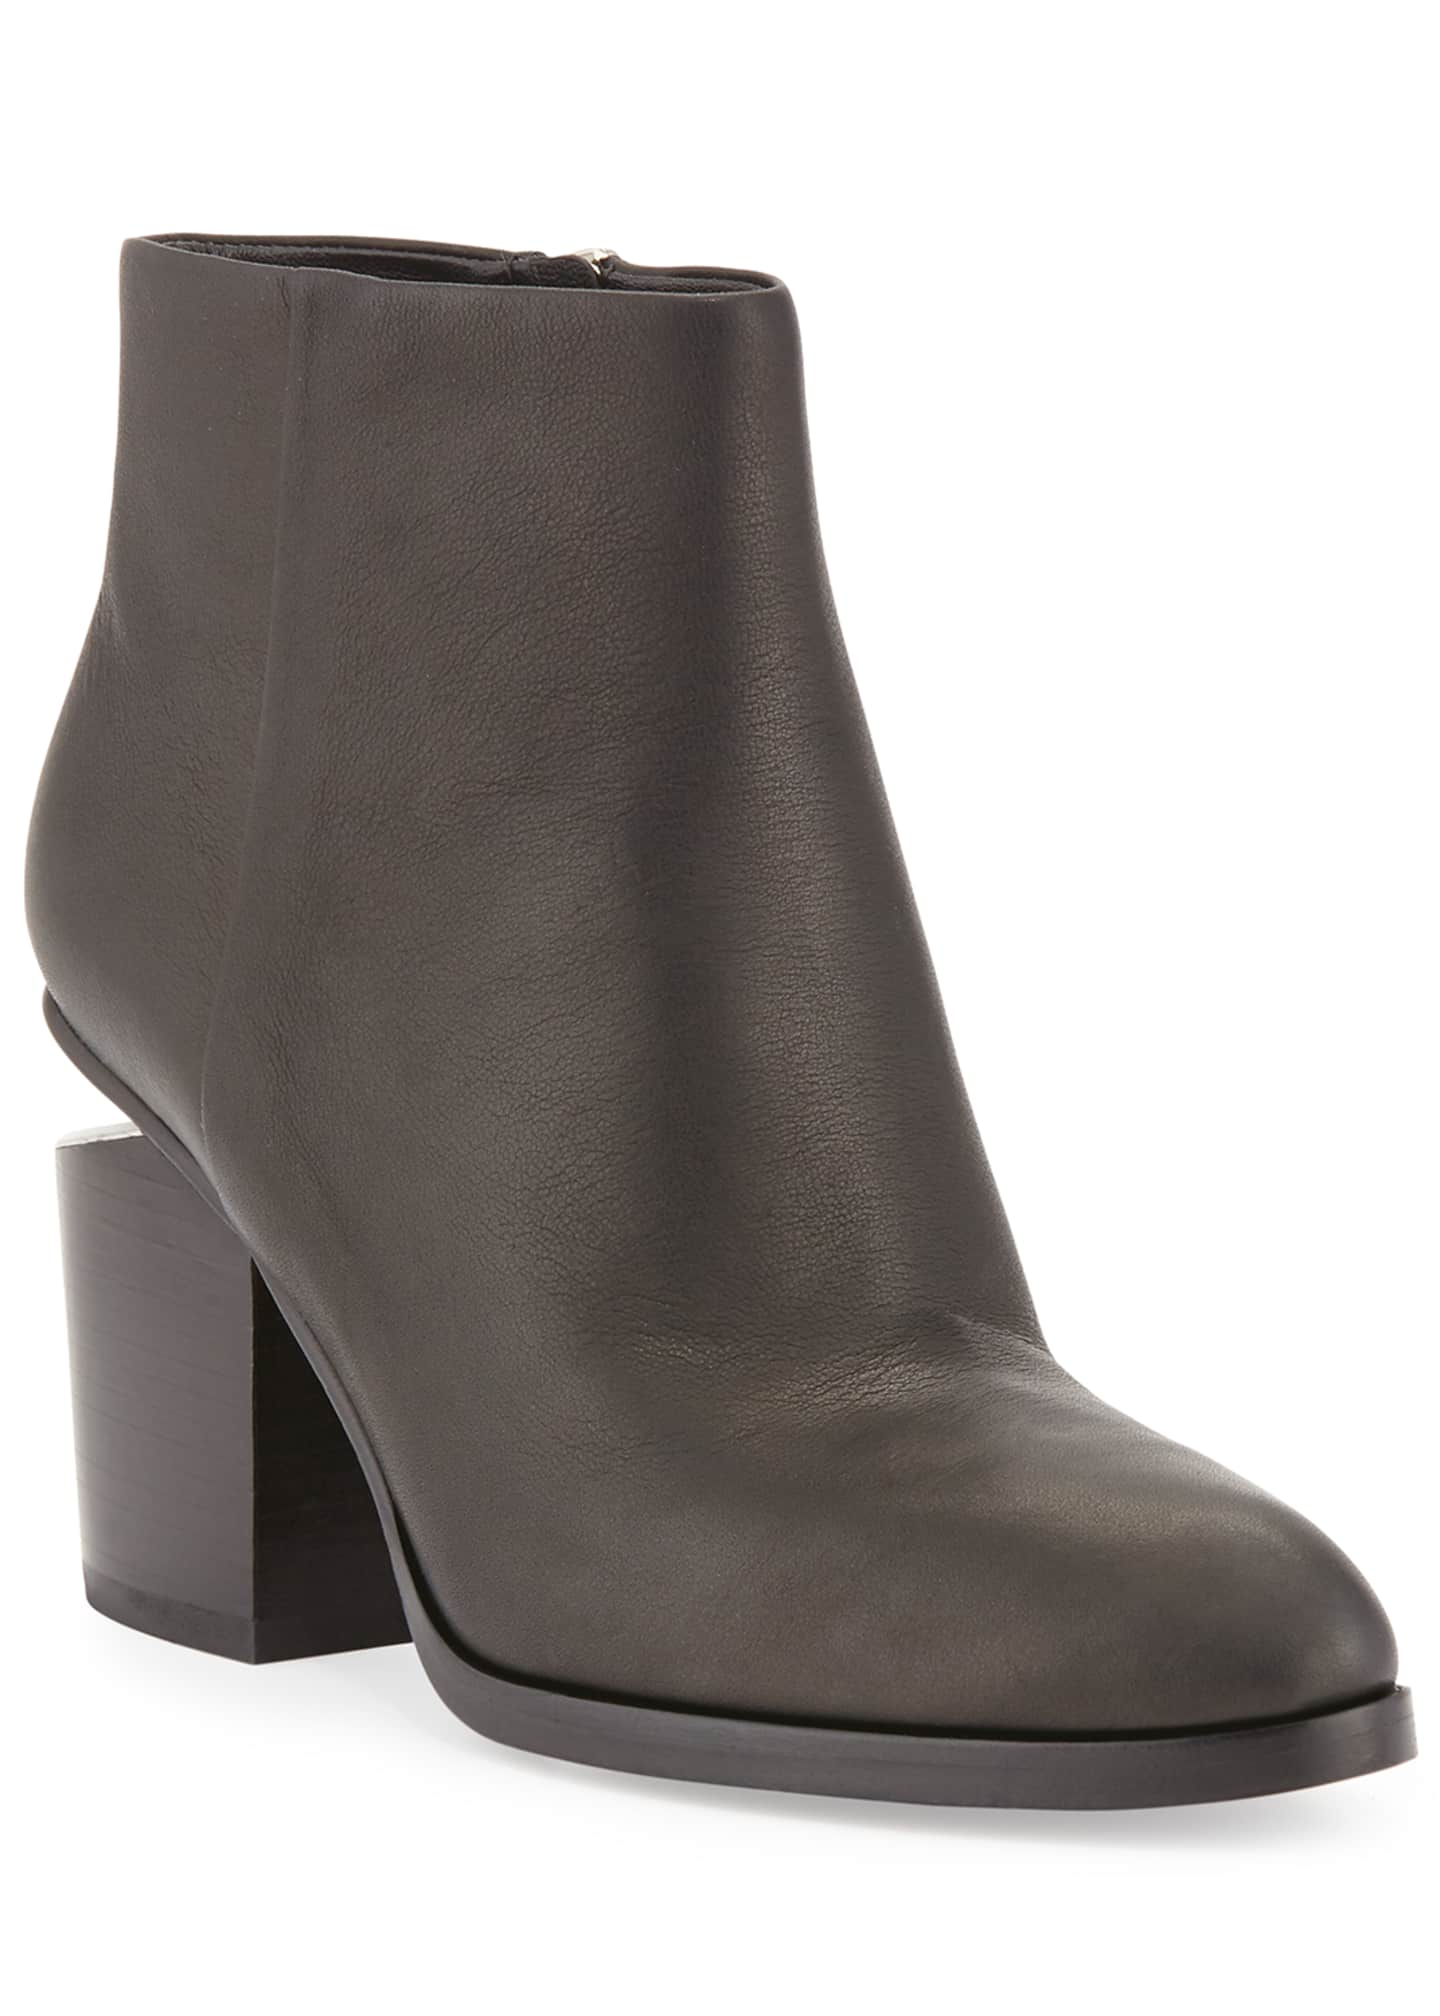 Alexander Wang Gabi Tilt-Heel Leather Boots, Black/Rhodium